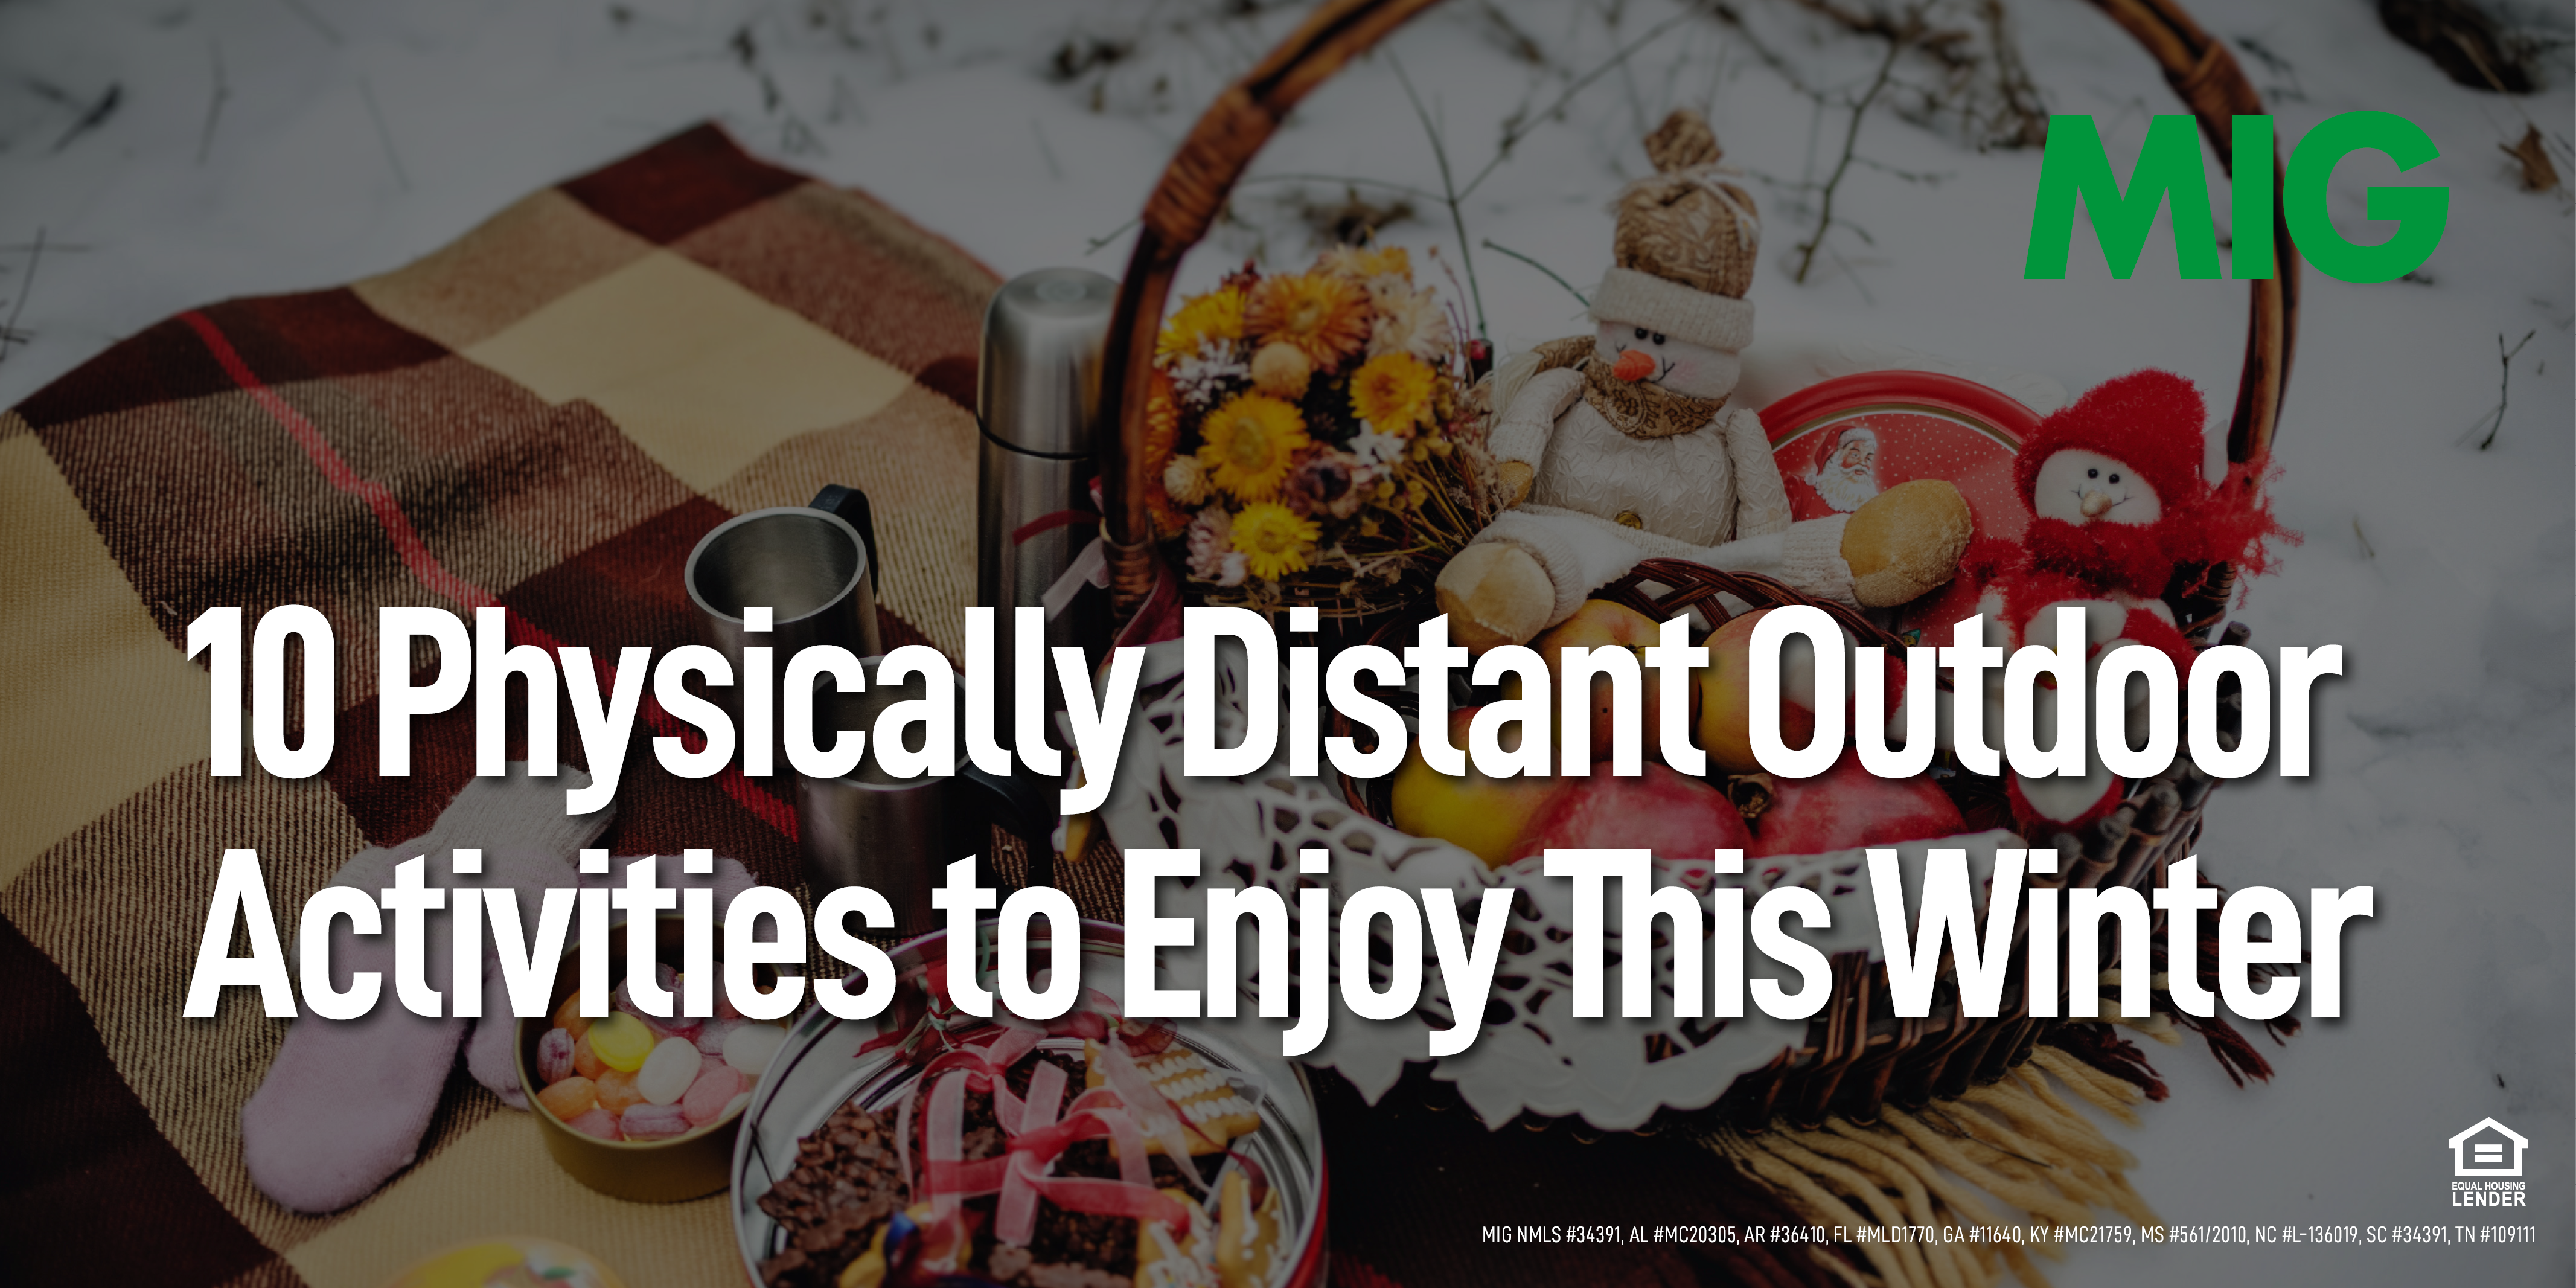 10 Physically Distant Outdoor Activities to Enjoy This Winter